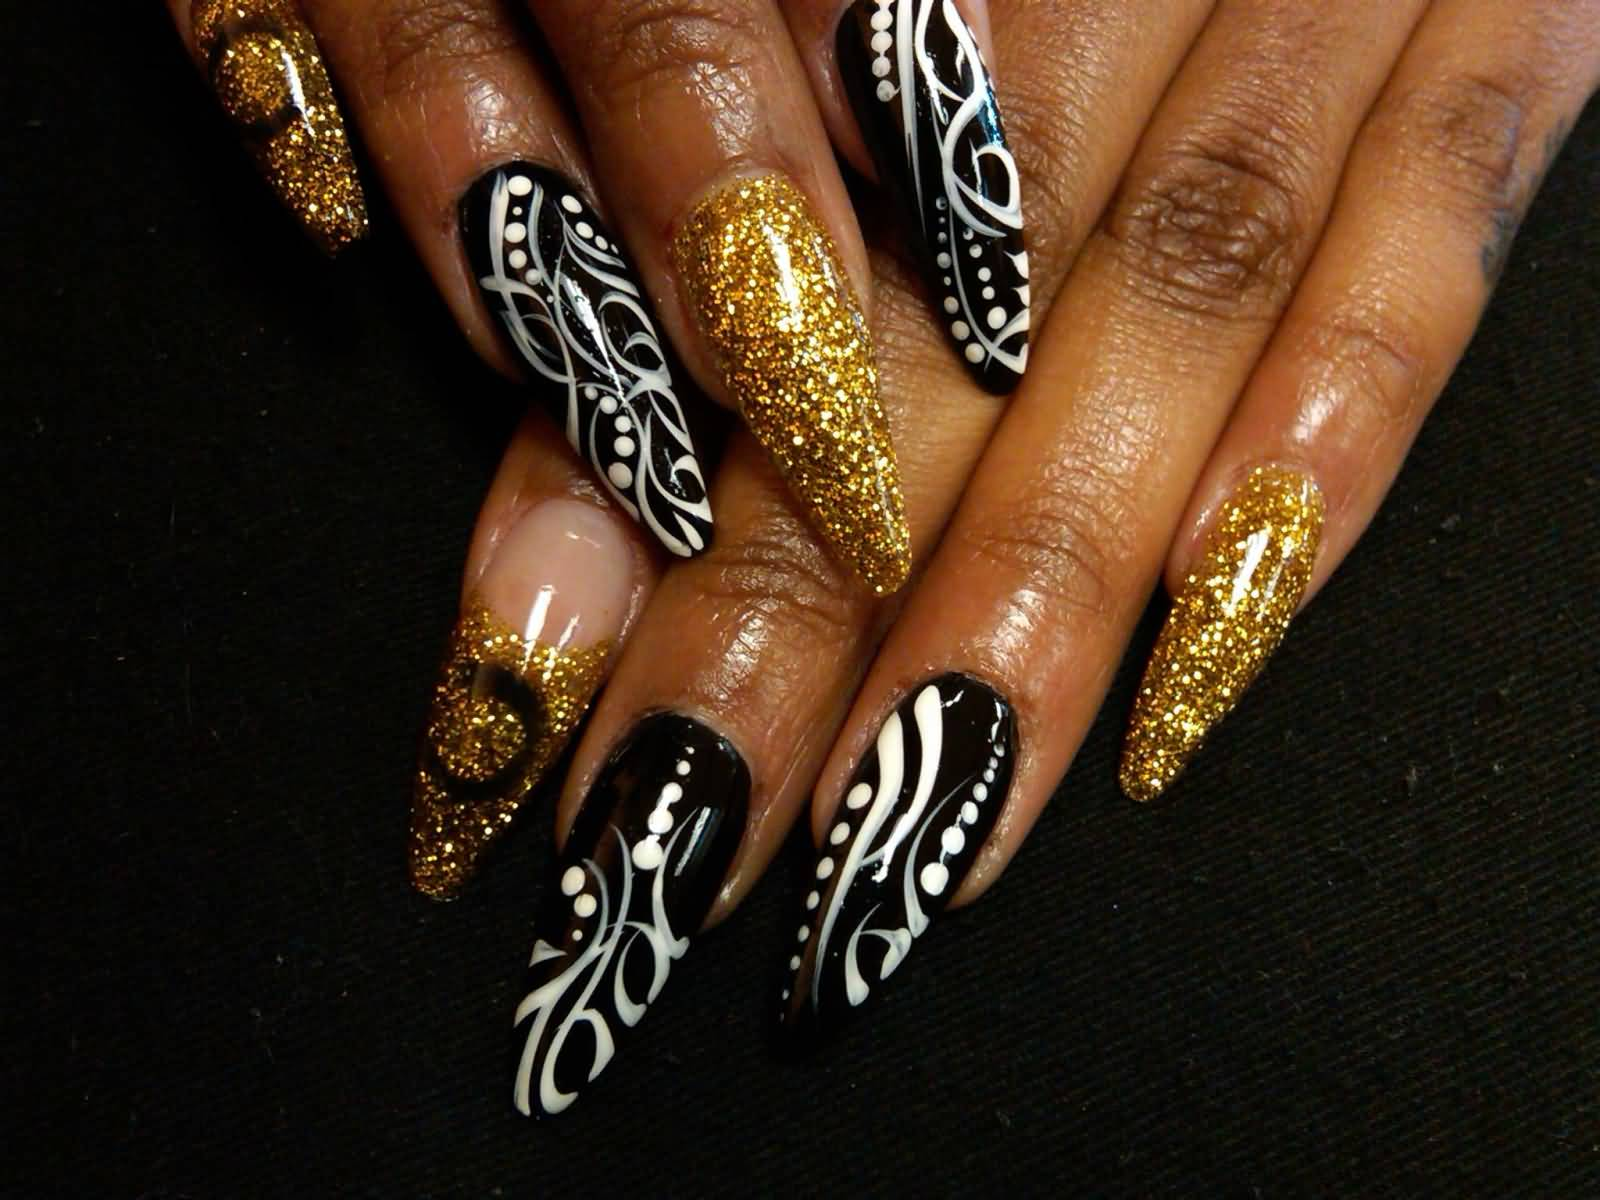 Amazing Black Nail Art Design With White Color And Golden Color